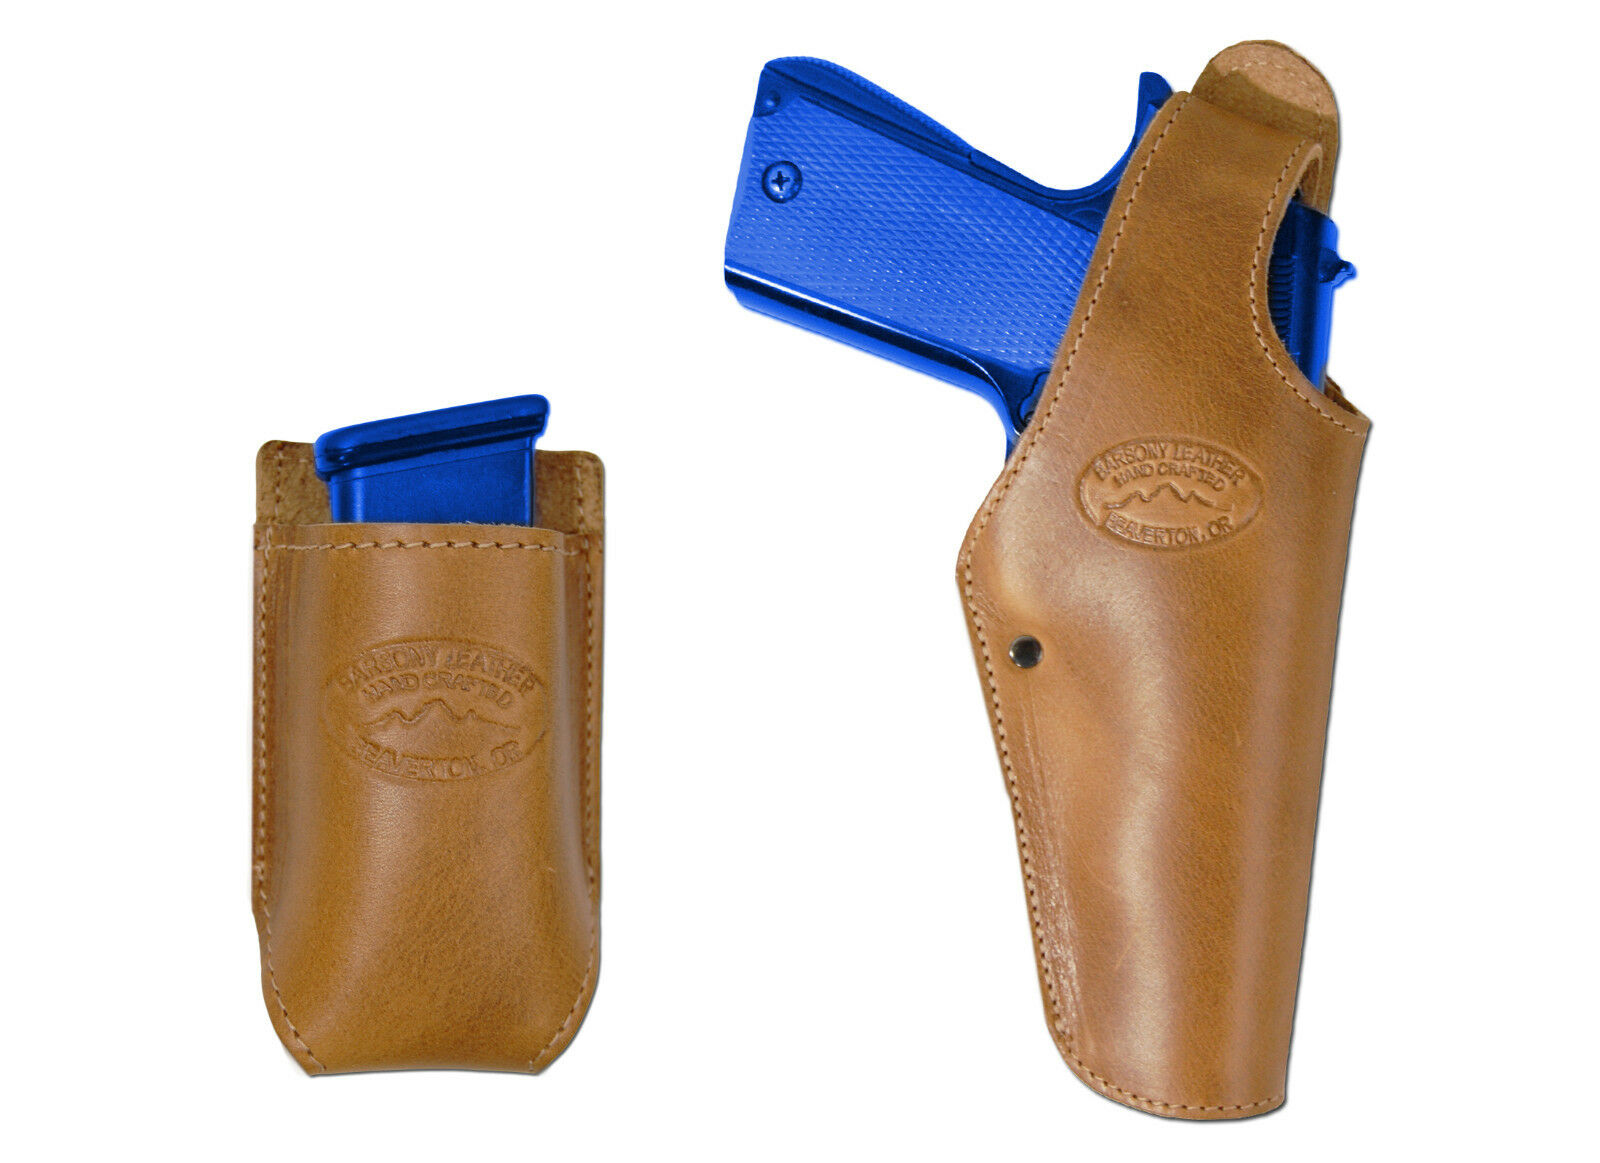 New Barsony Tan Leather OWB Holster + Mag Pouch Smith&Wesson Full Size 9mm 40 45